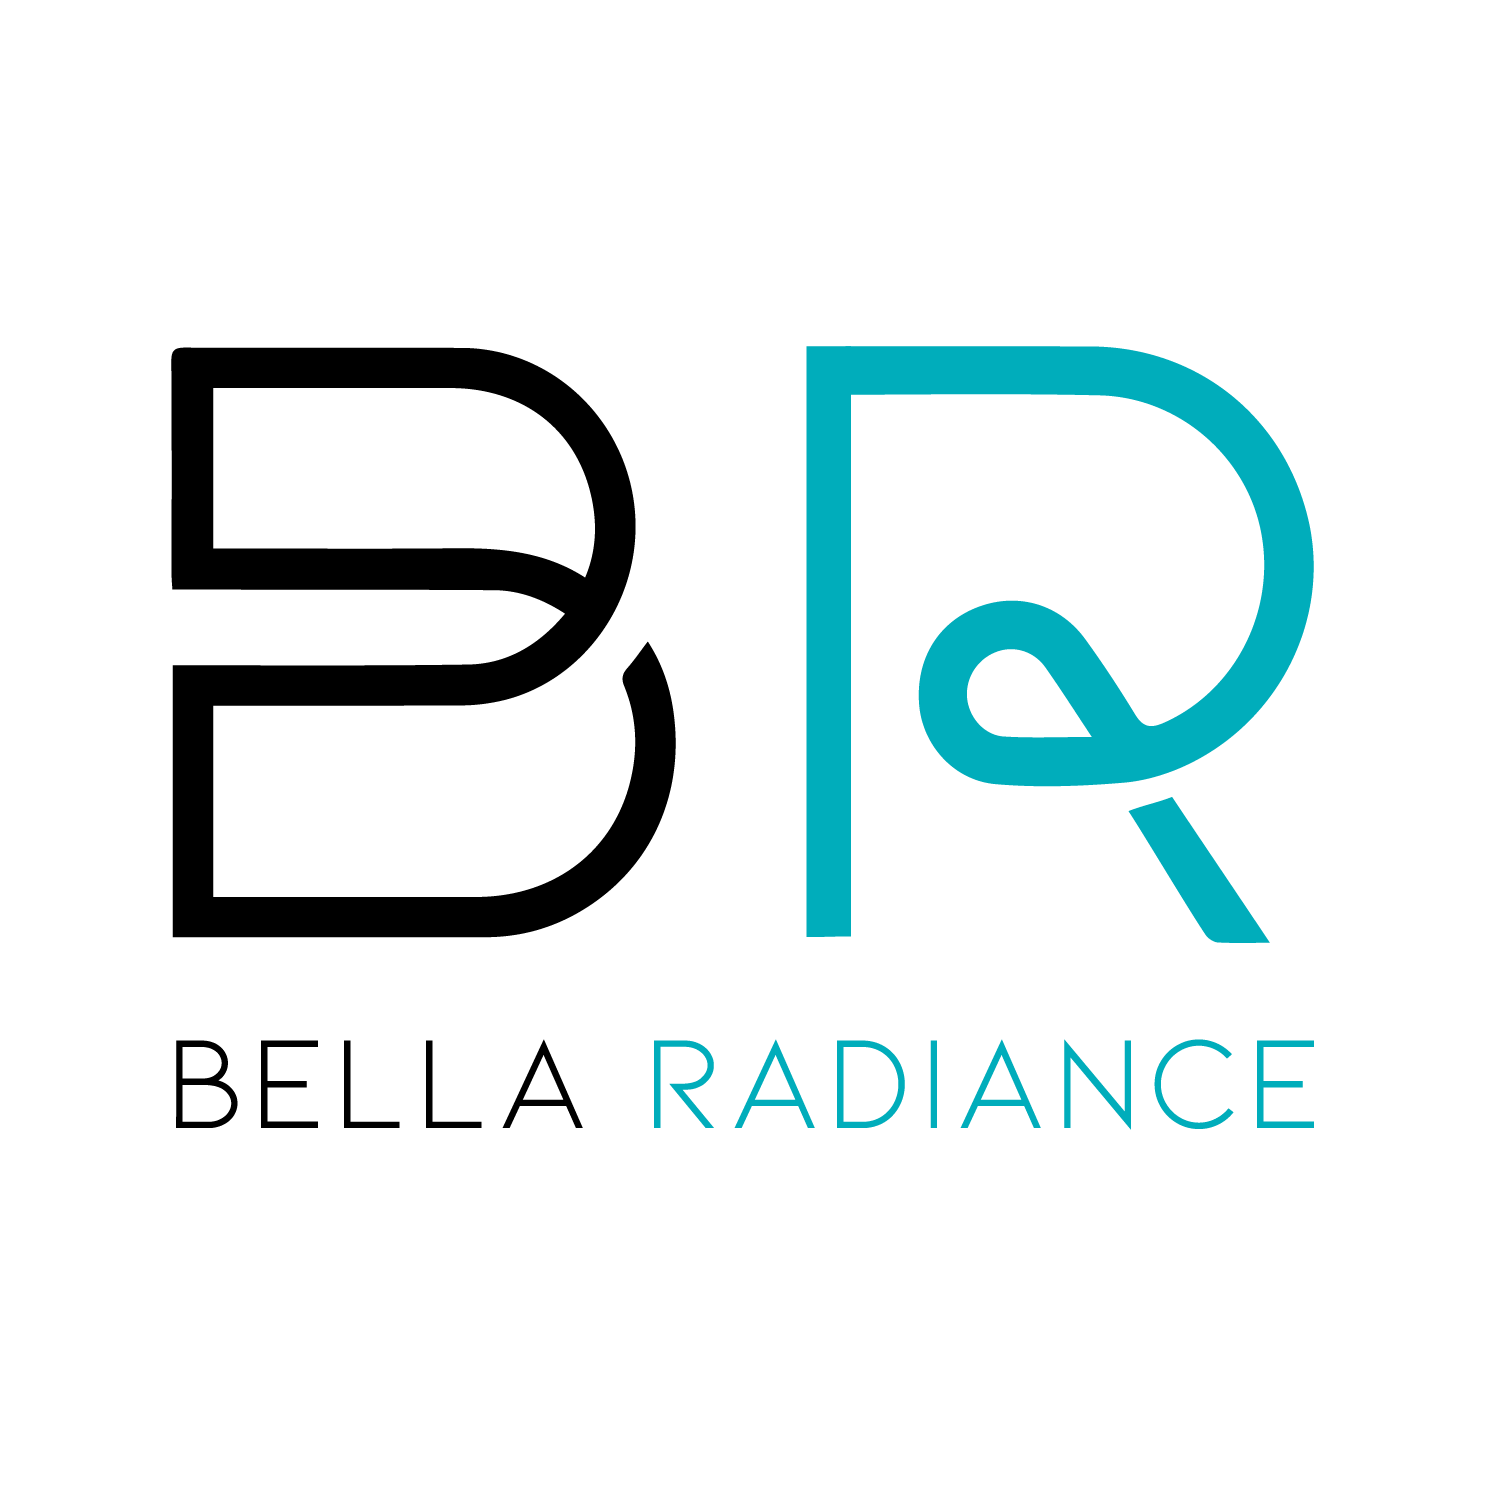 Bella Facebook Logos